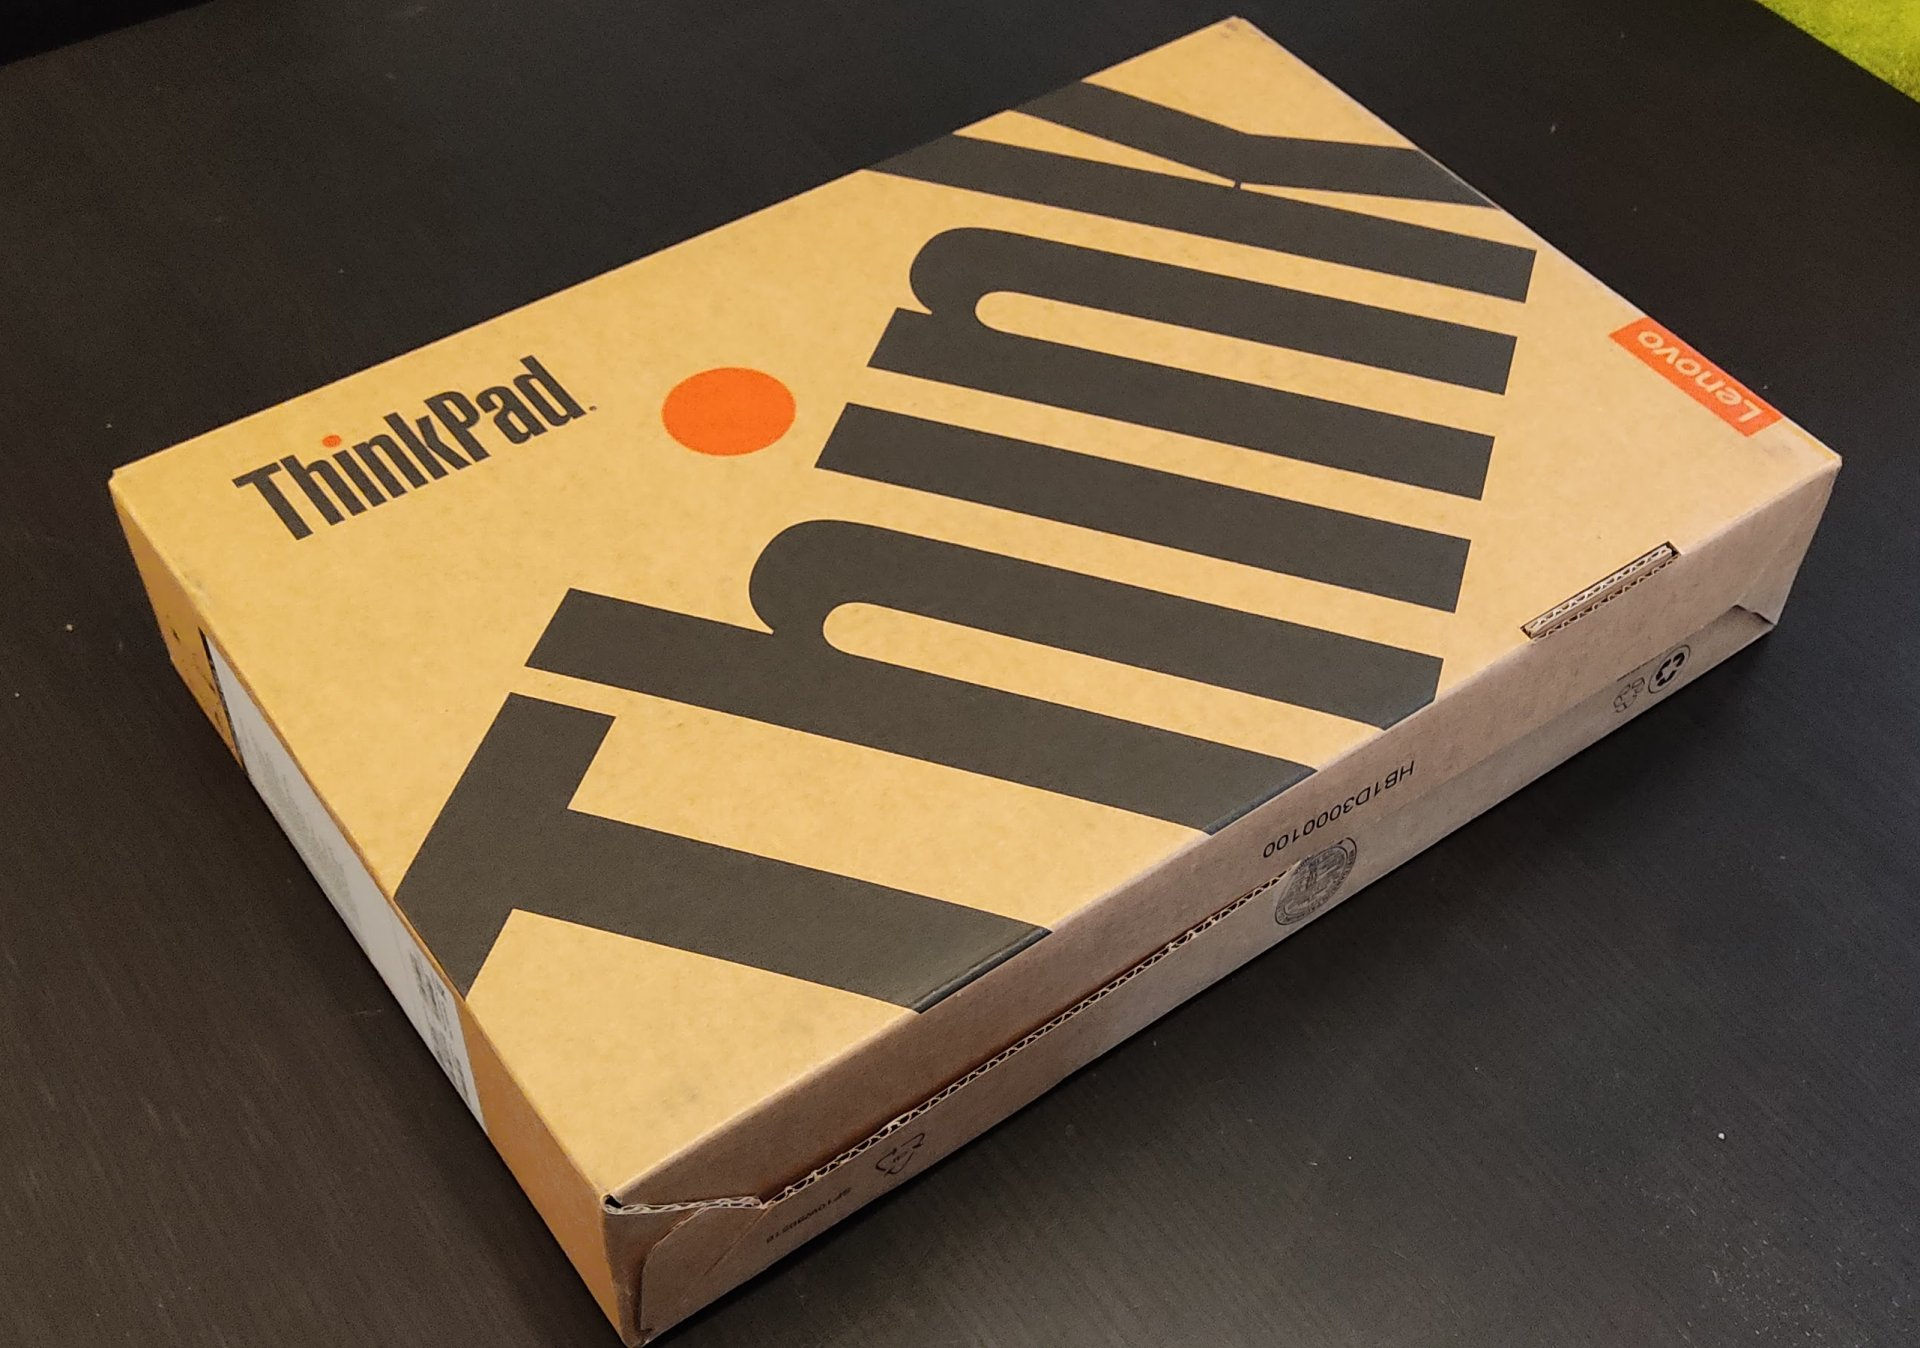 Thinkpad T14 Unboxing 1